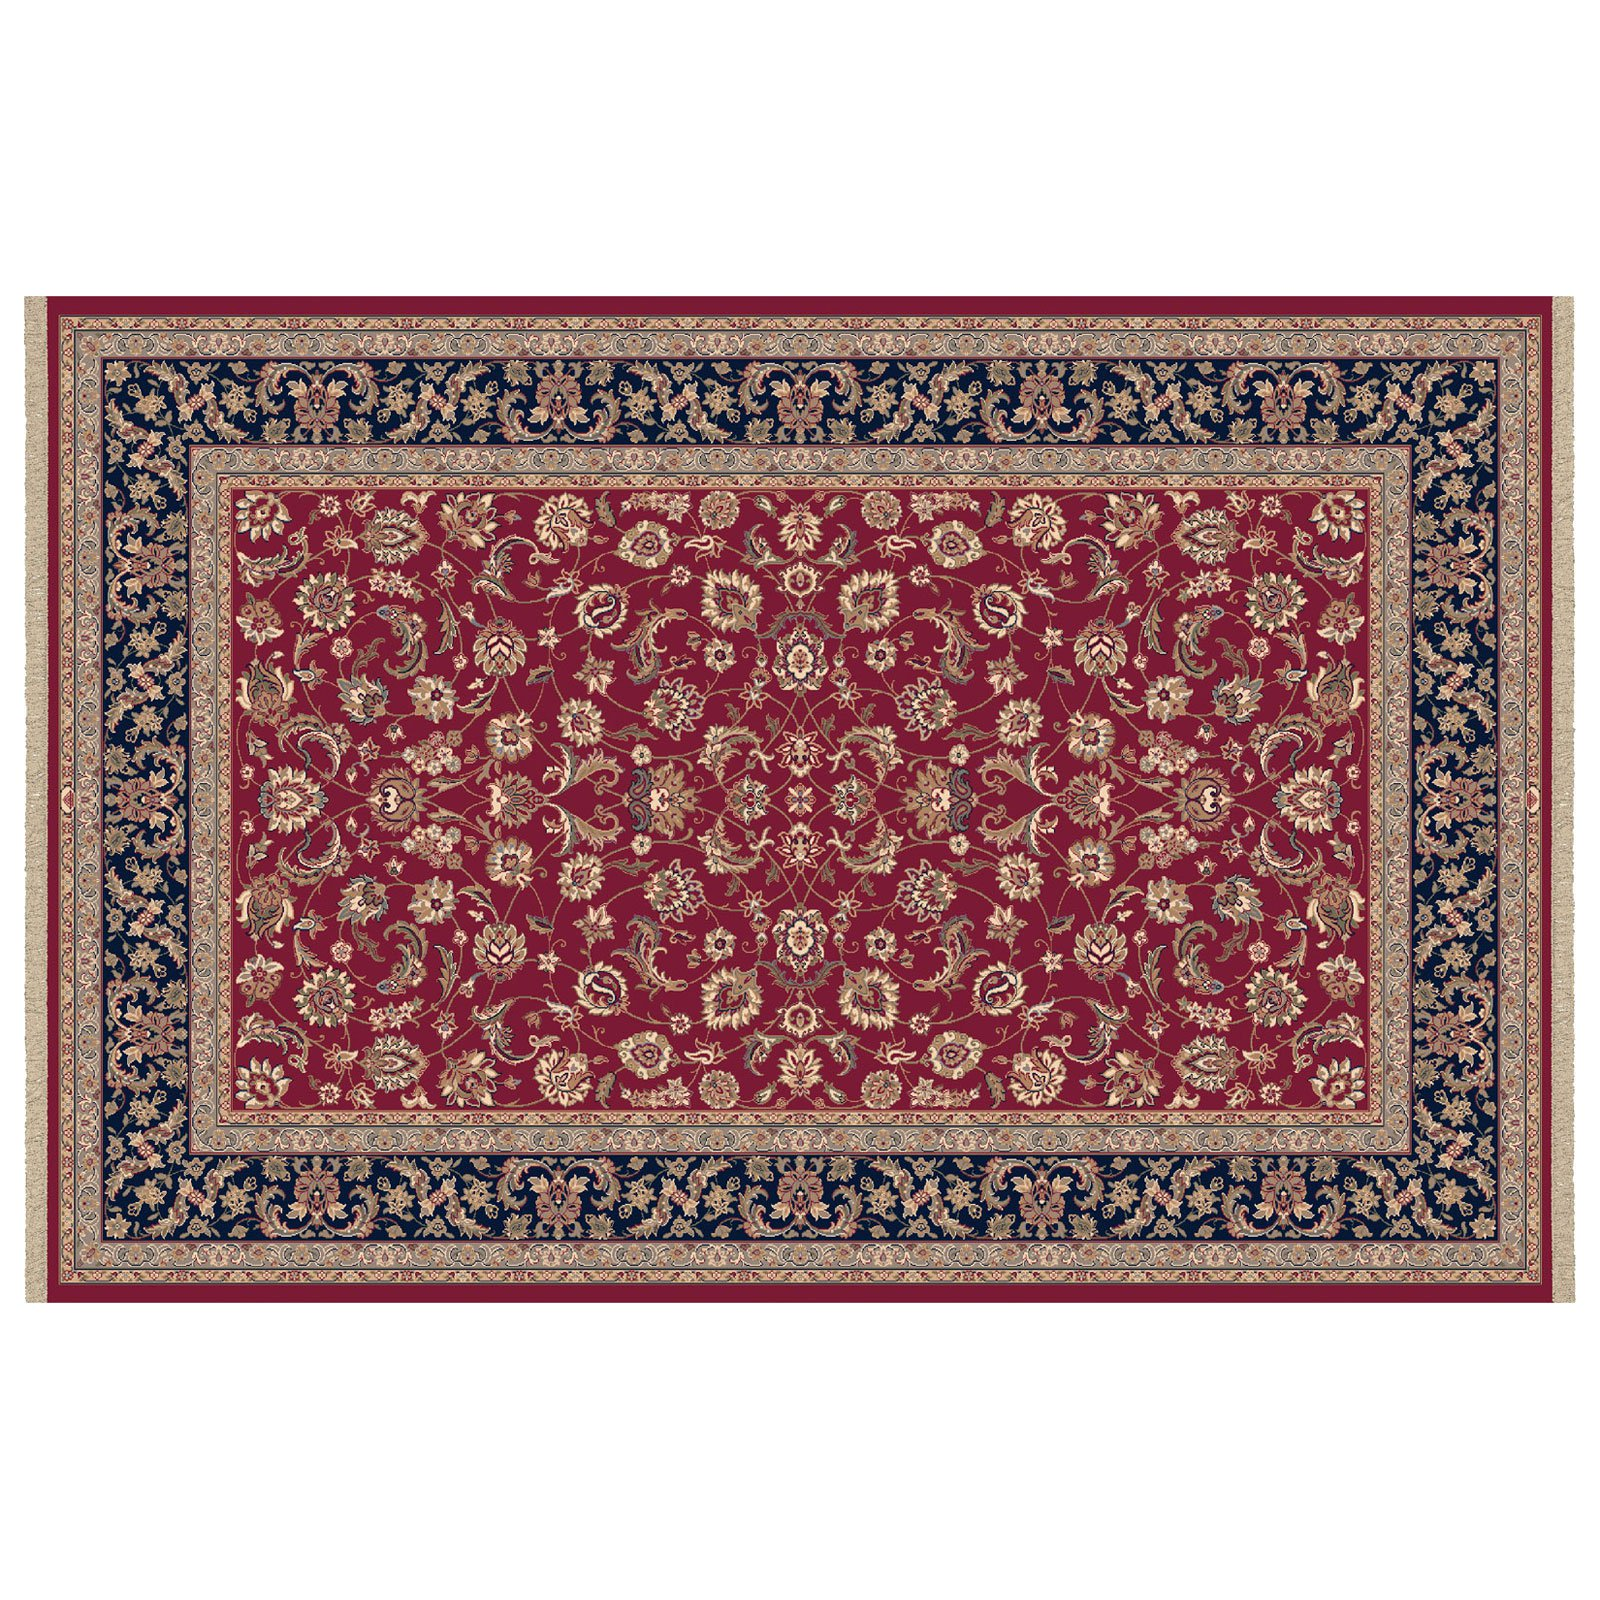 Dynamic Rugs Brilliant Collection Wool Hearth Rug-Red Frieze by Dynamic Rugs